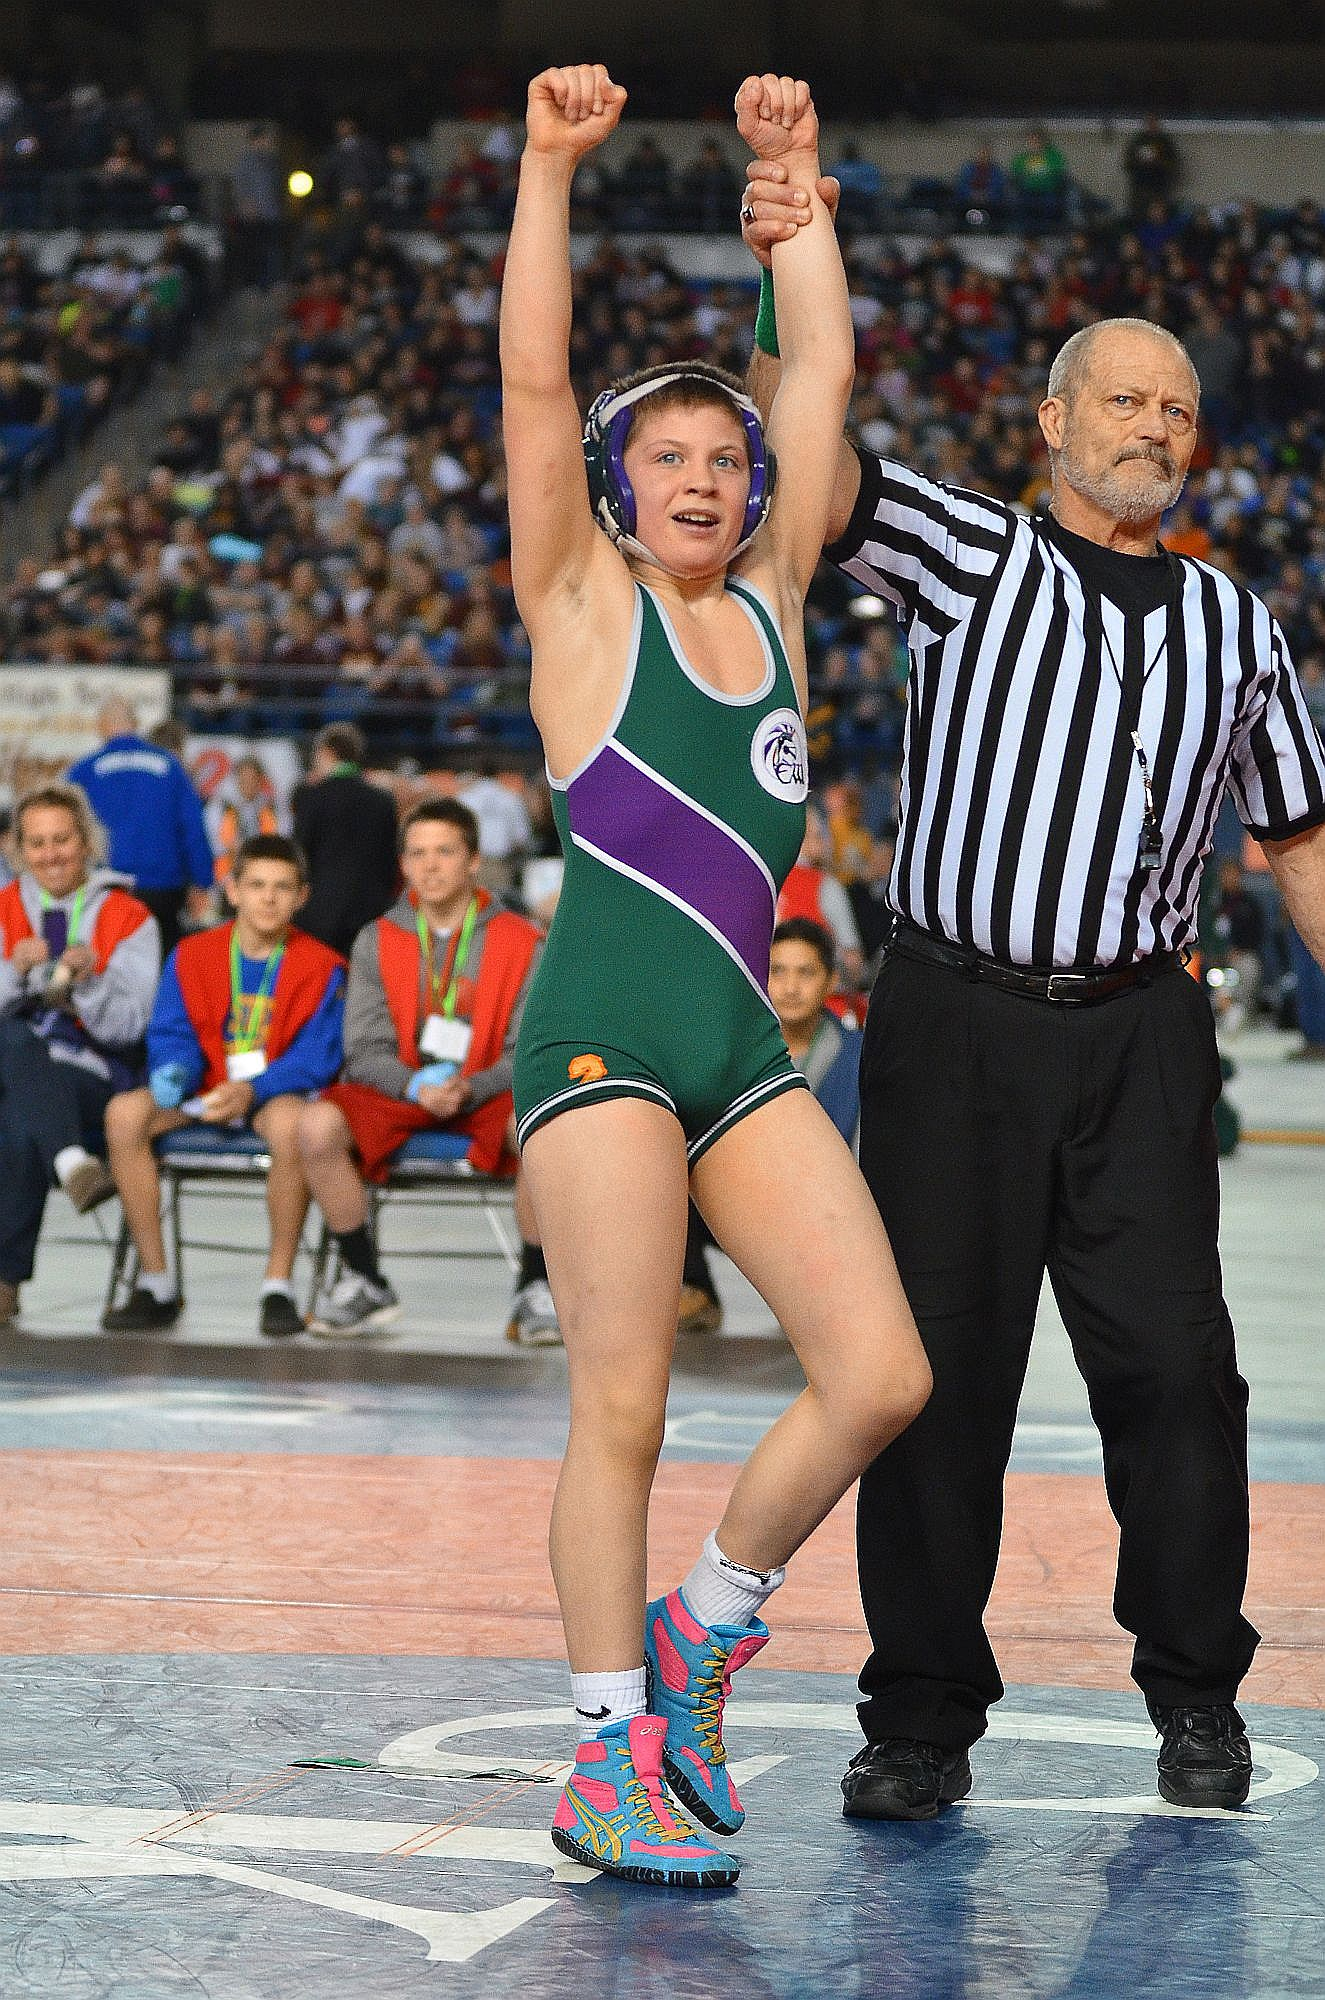 Noah Cuzzetto wins state wrestling title - My Edmonds News